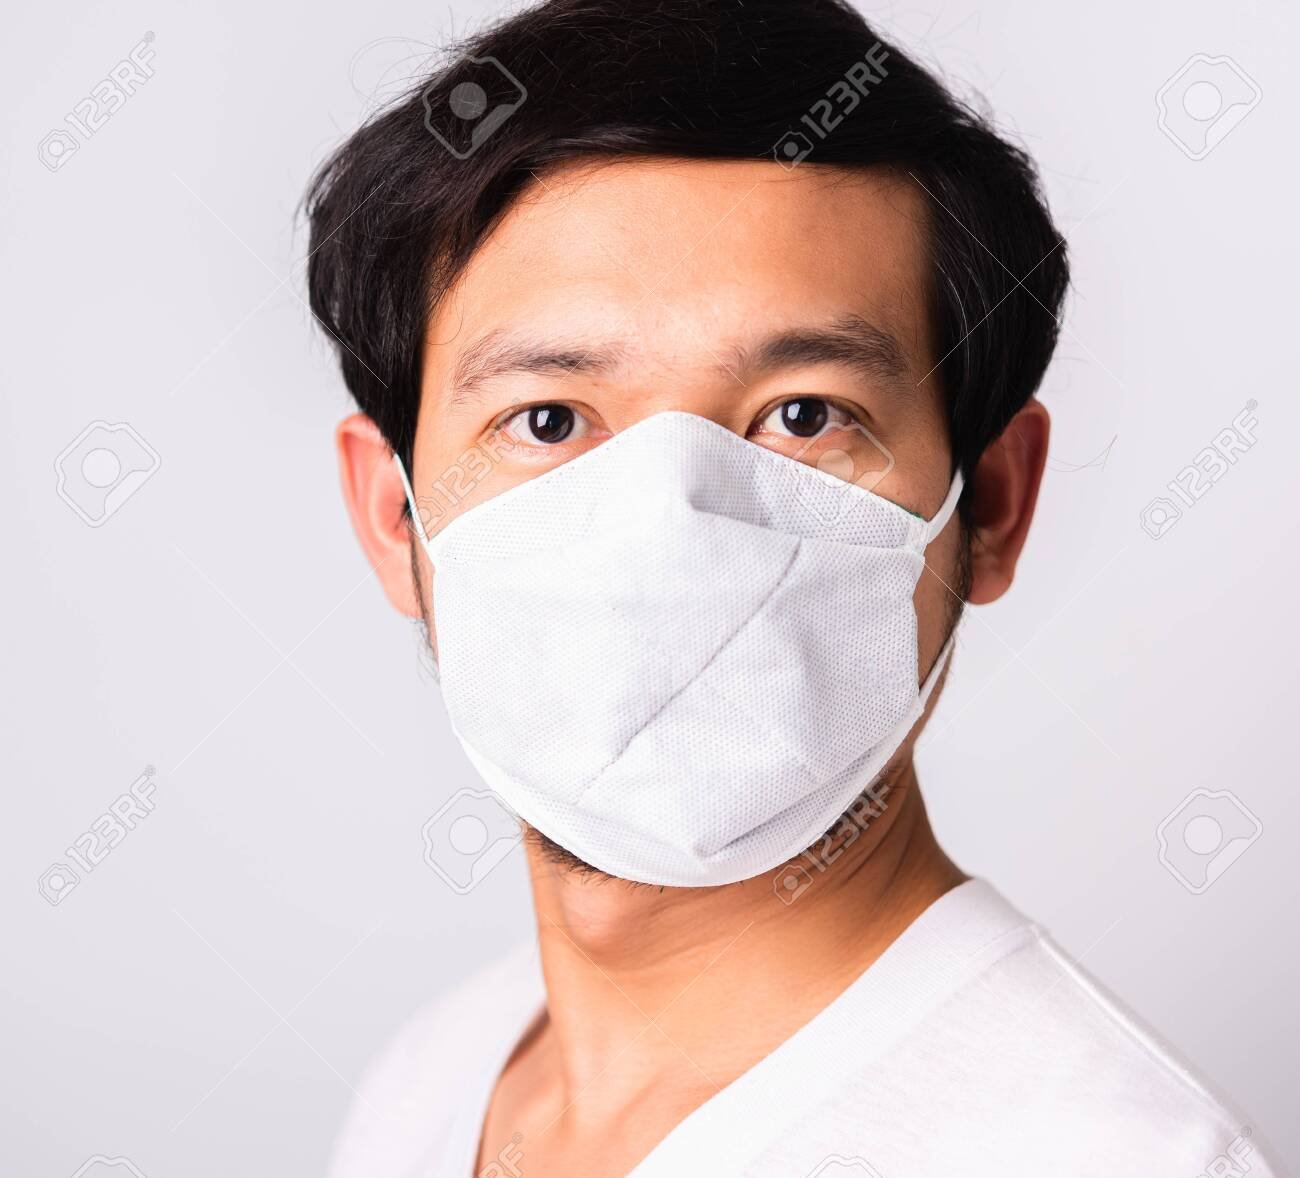 Closeup Asian handsome Man wearing surgical hygienic protective cloth face mask against coronavirus, studio shot isolated white background, COVID-19 medical concept - 145780971